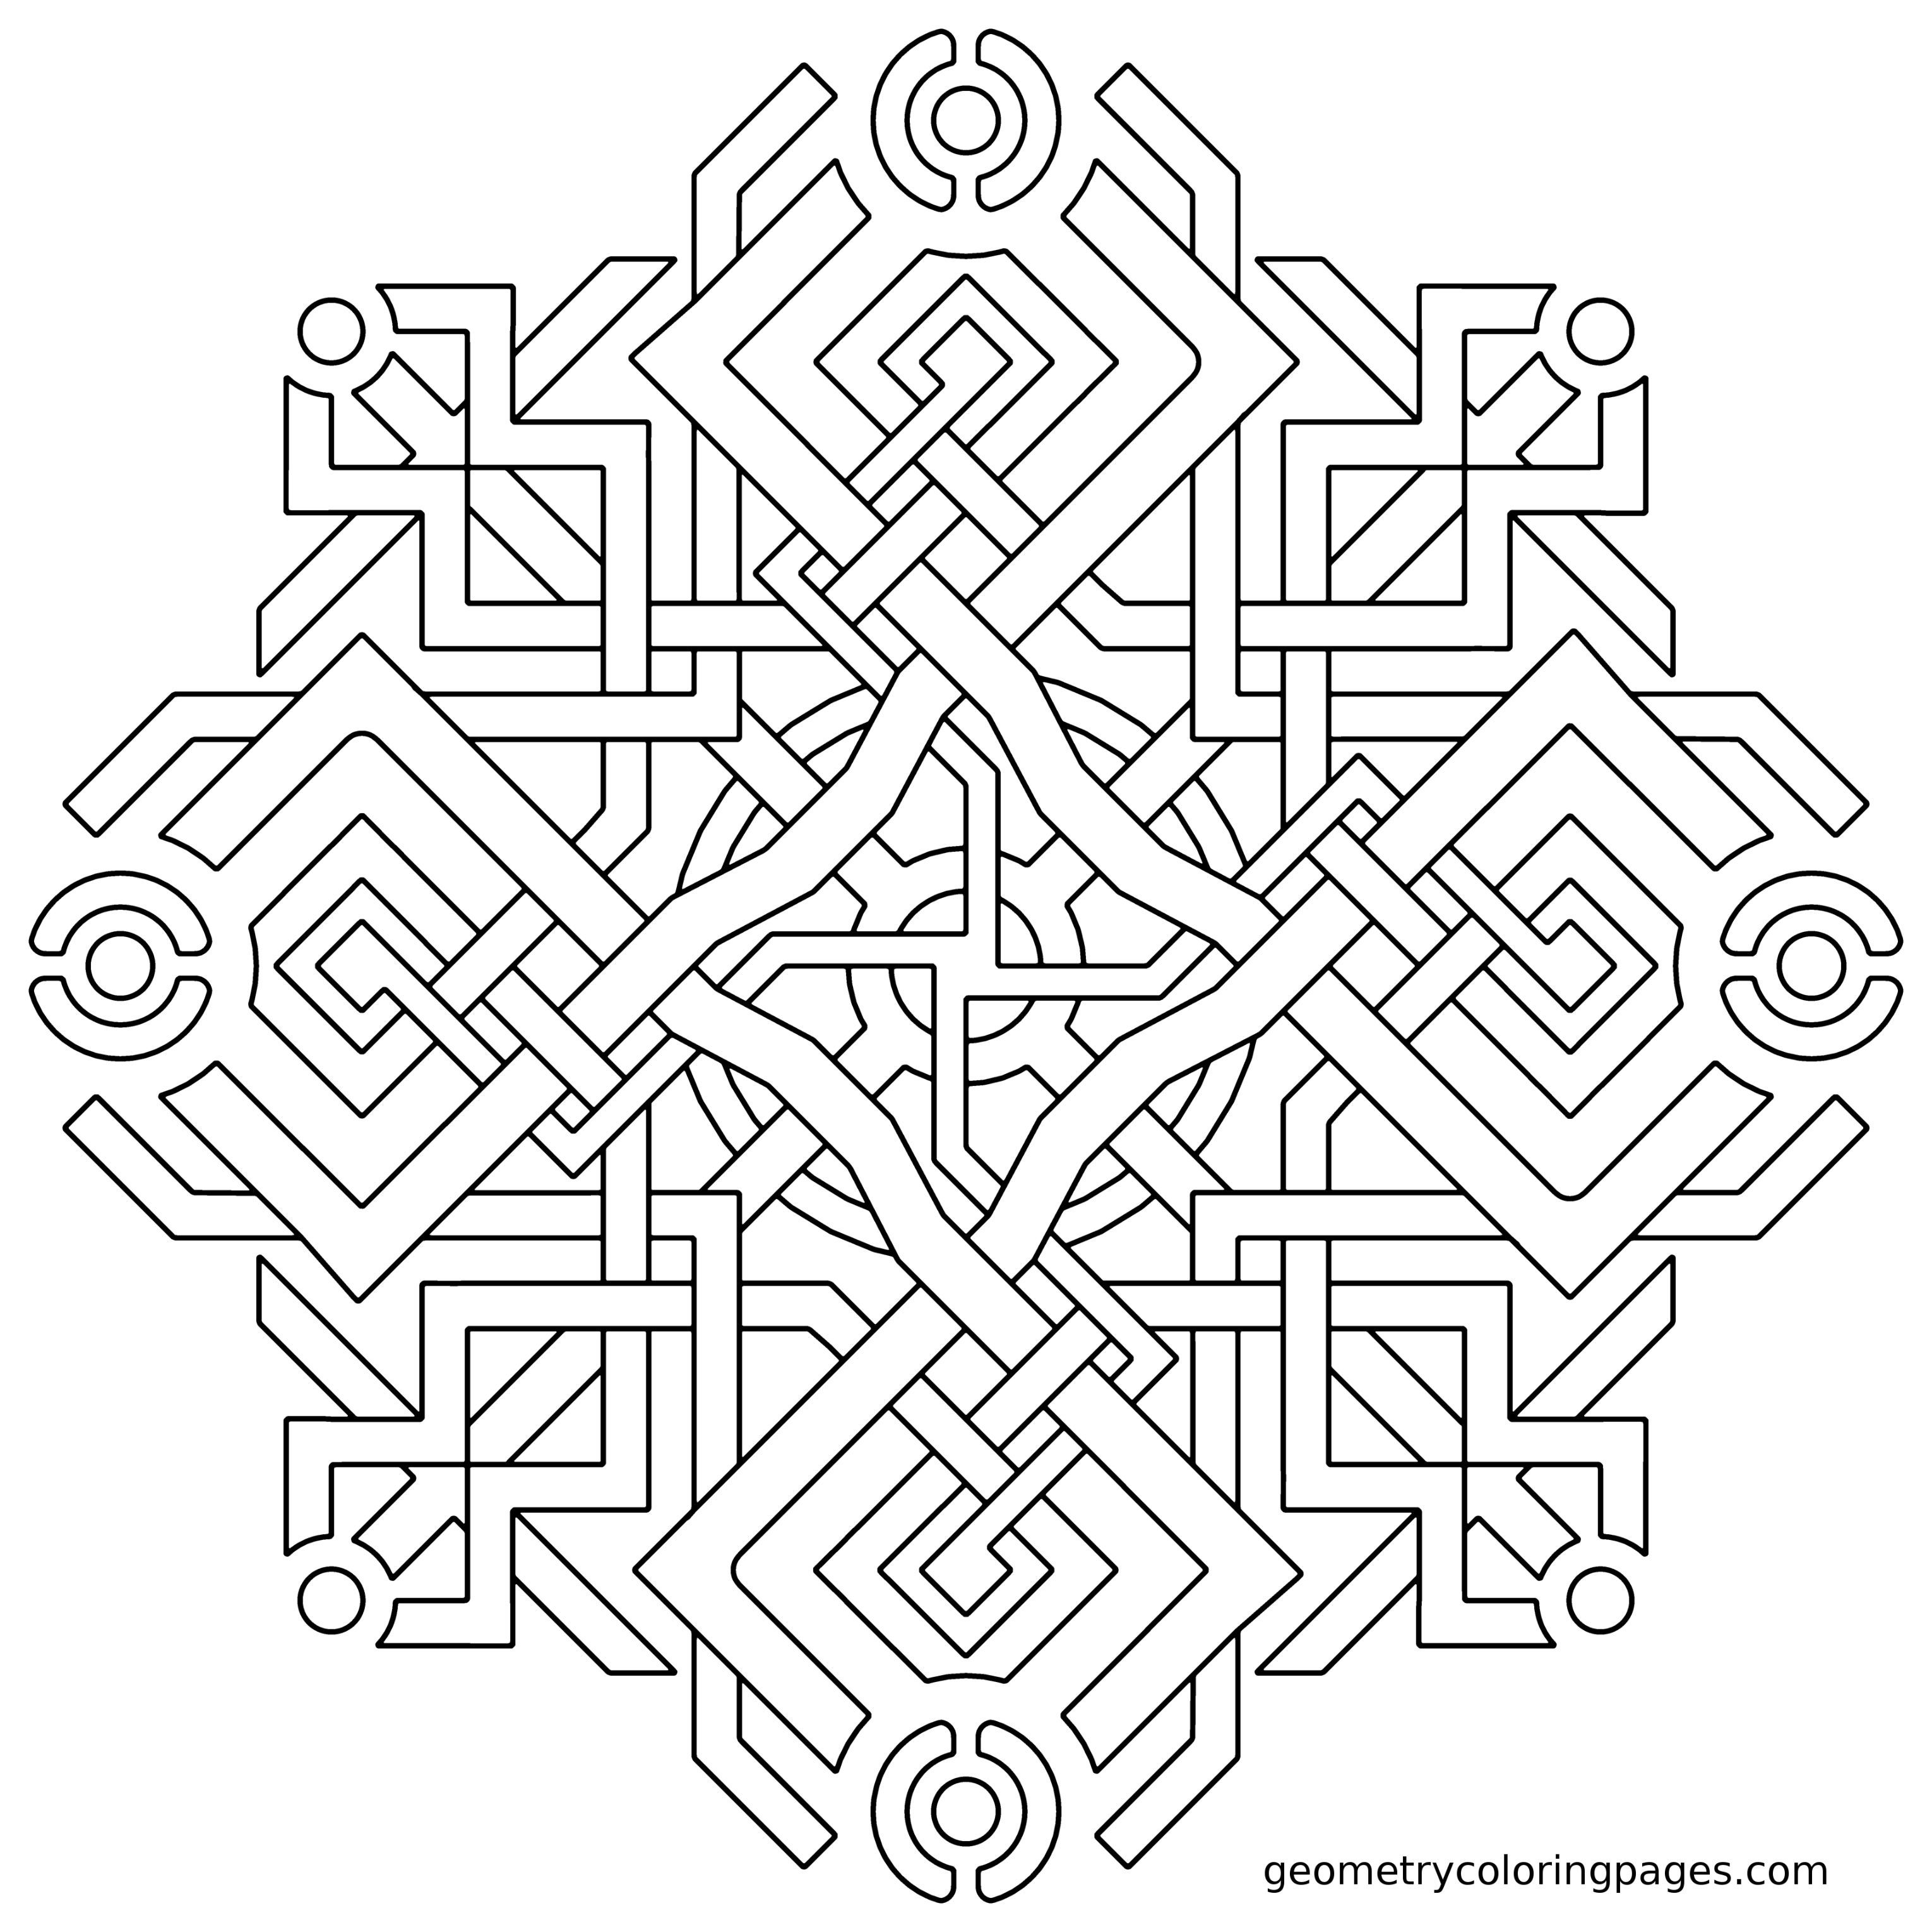 Geometry Coloring Pages All Age Coloring Pages